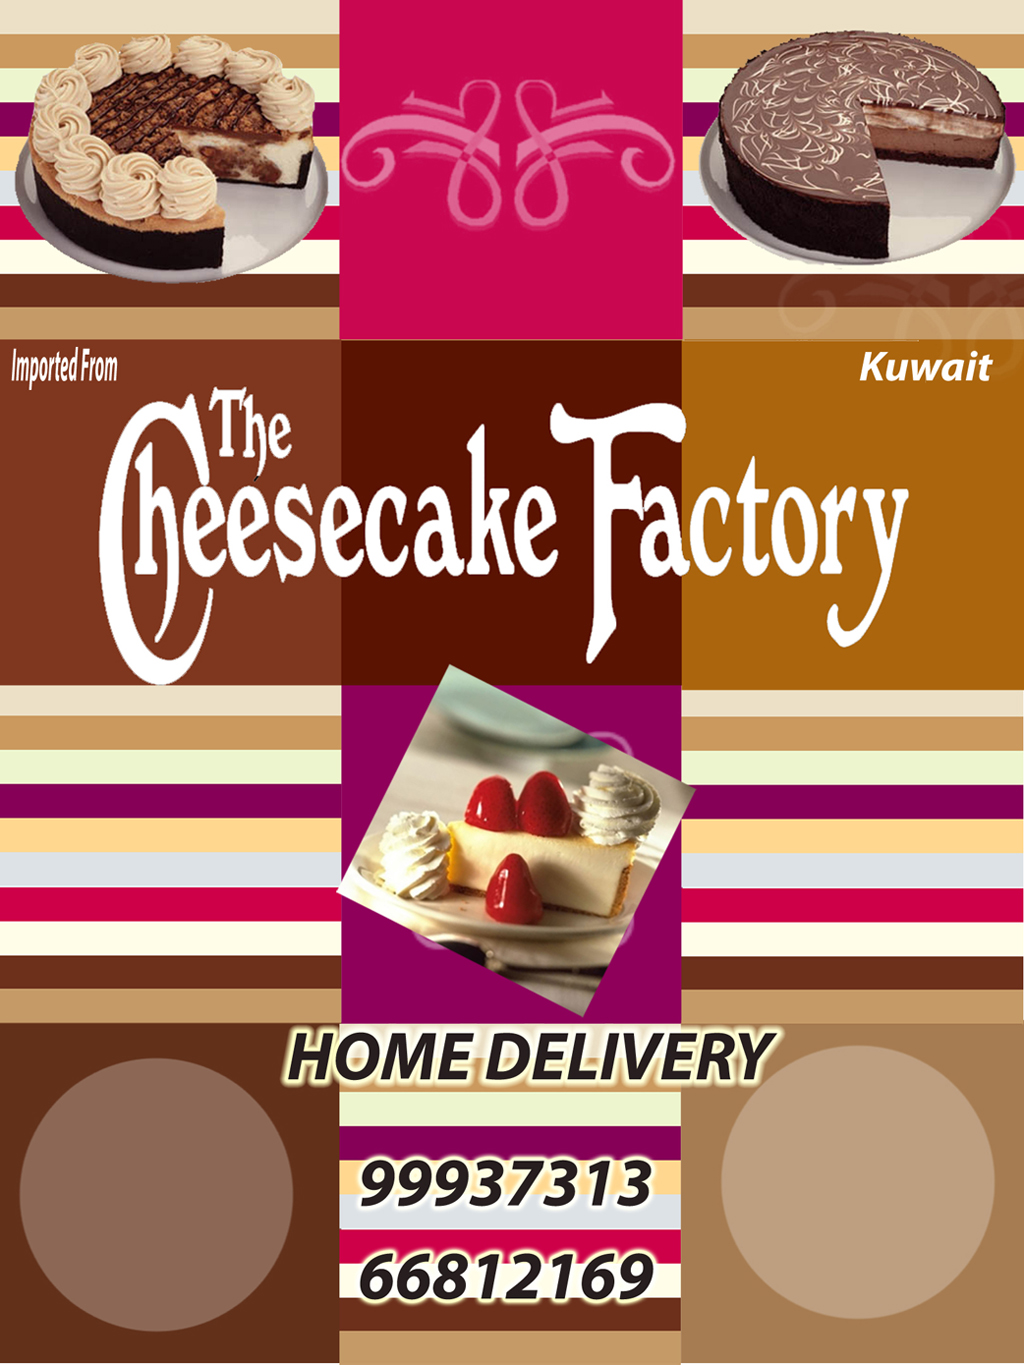 The Cheesecake Factory Kuwait Paper Dump